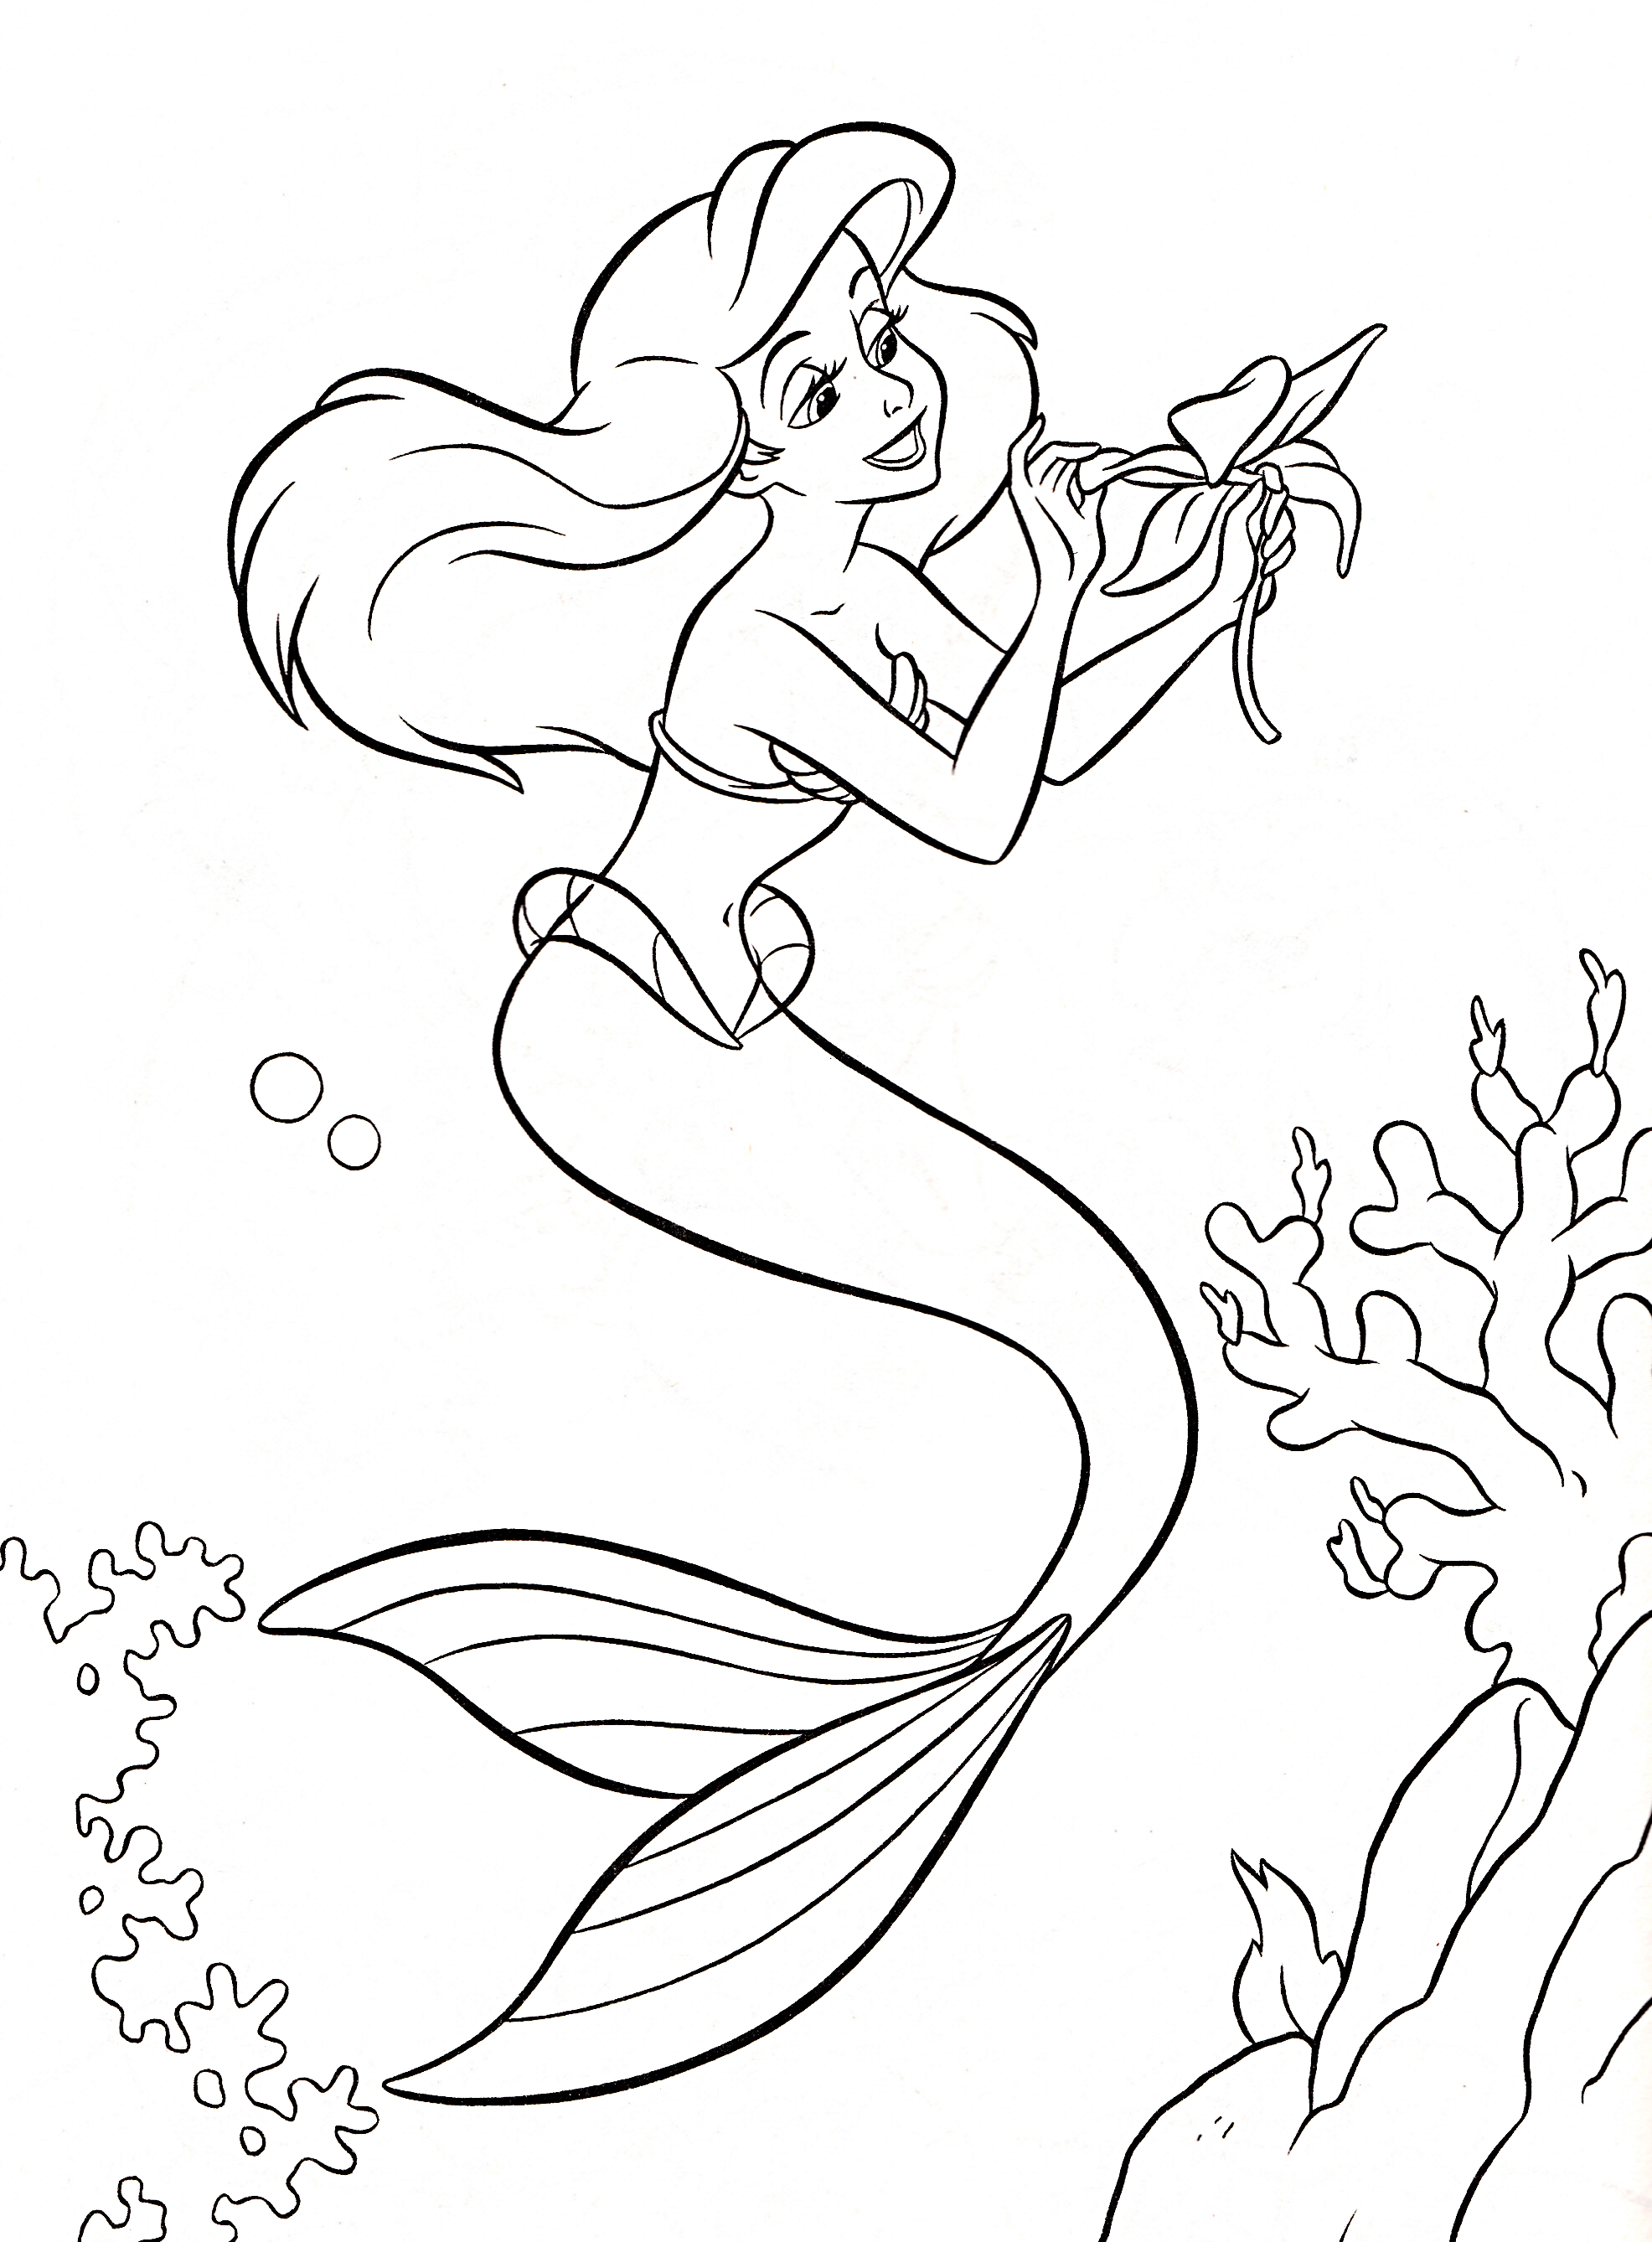 ariel disney coloring pages - photo#33